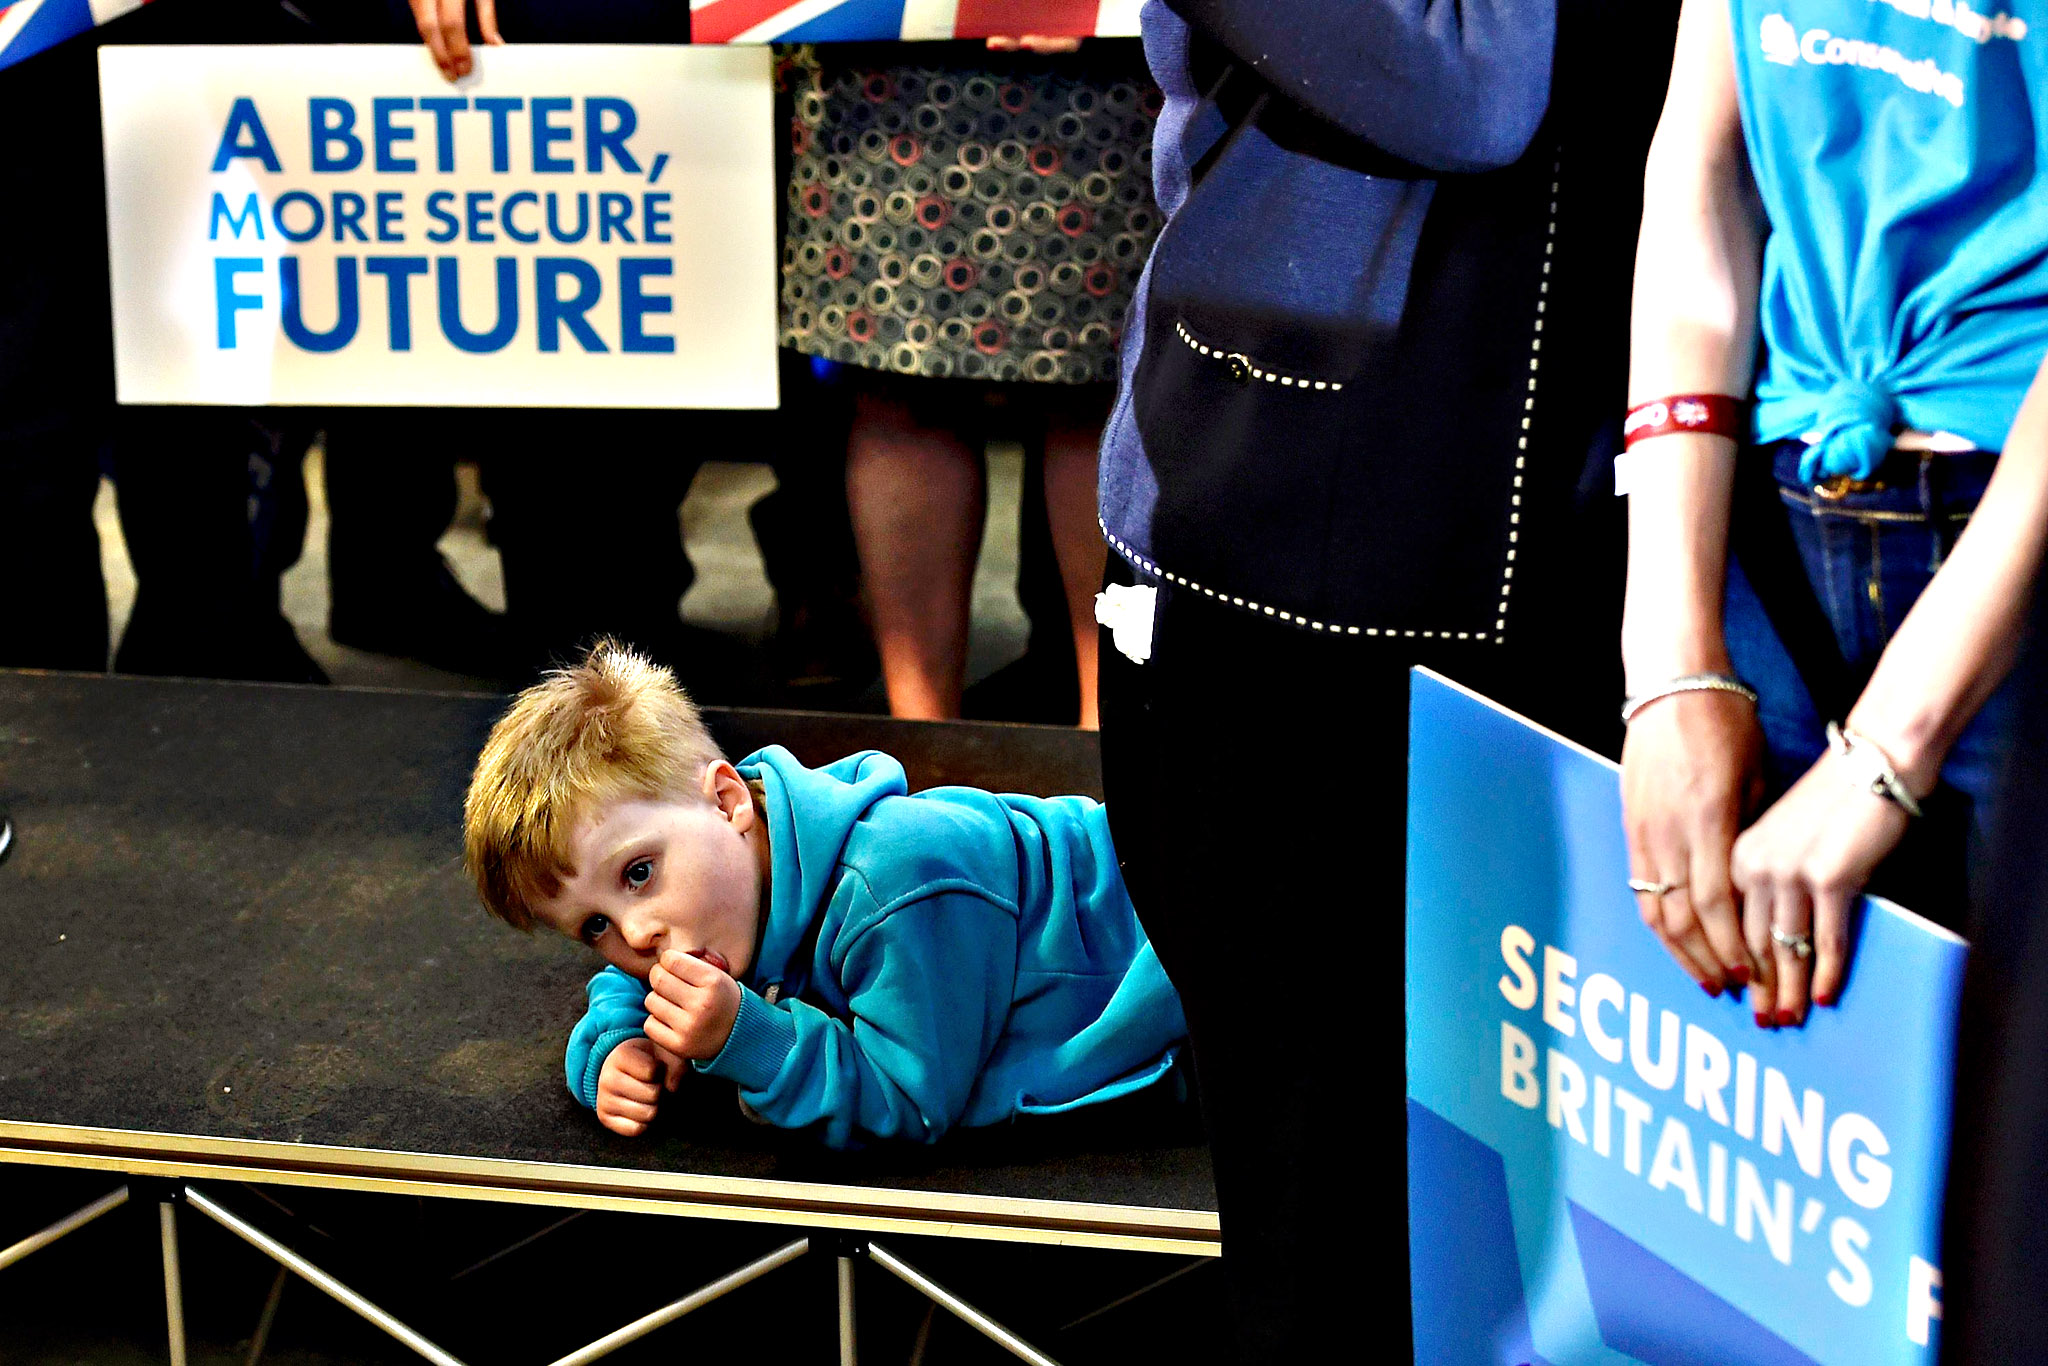 A child of a party activist waits for Britain's Prime Minister David Cameron to deliver a speech at a regional campaign launch in Penzance on Thursday in Penzance, England. Britain goes to the polls in a General Election on May 7